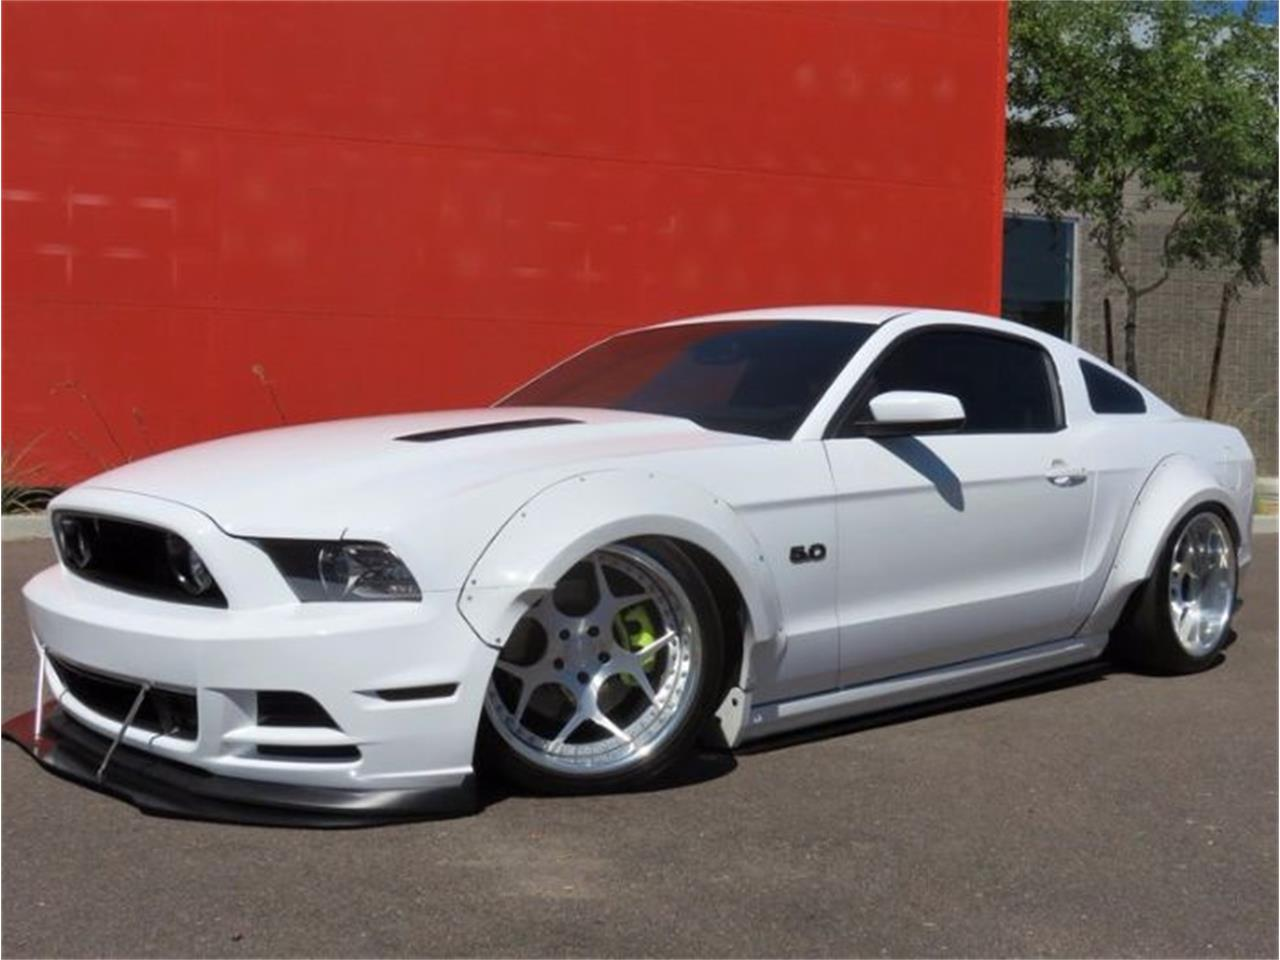 Large picture of 14 mustang o19o